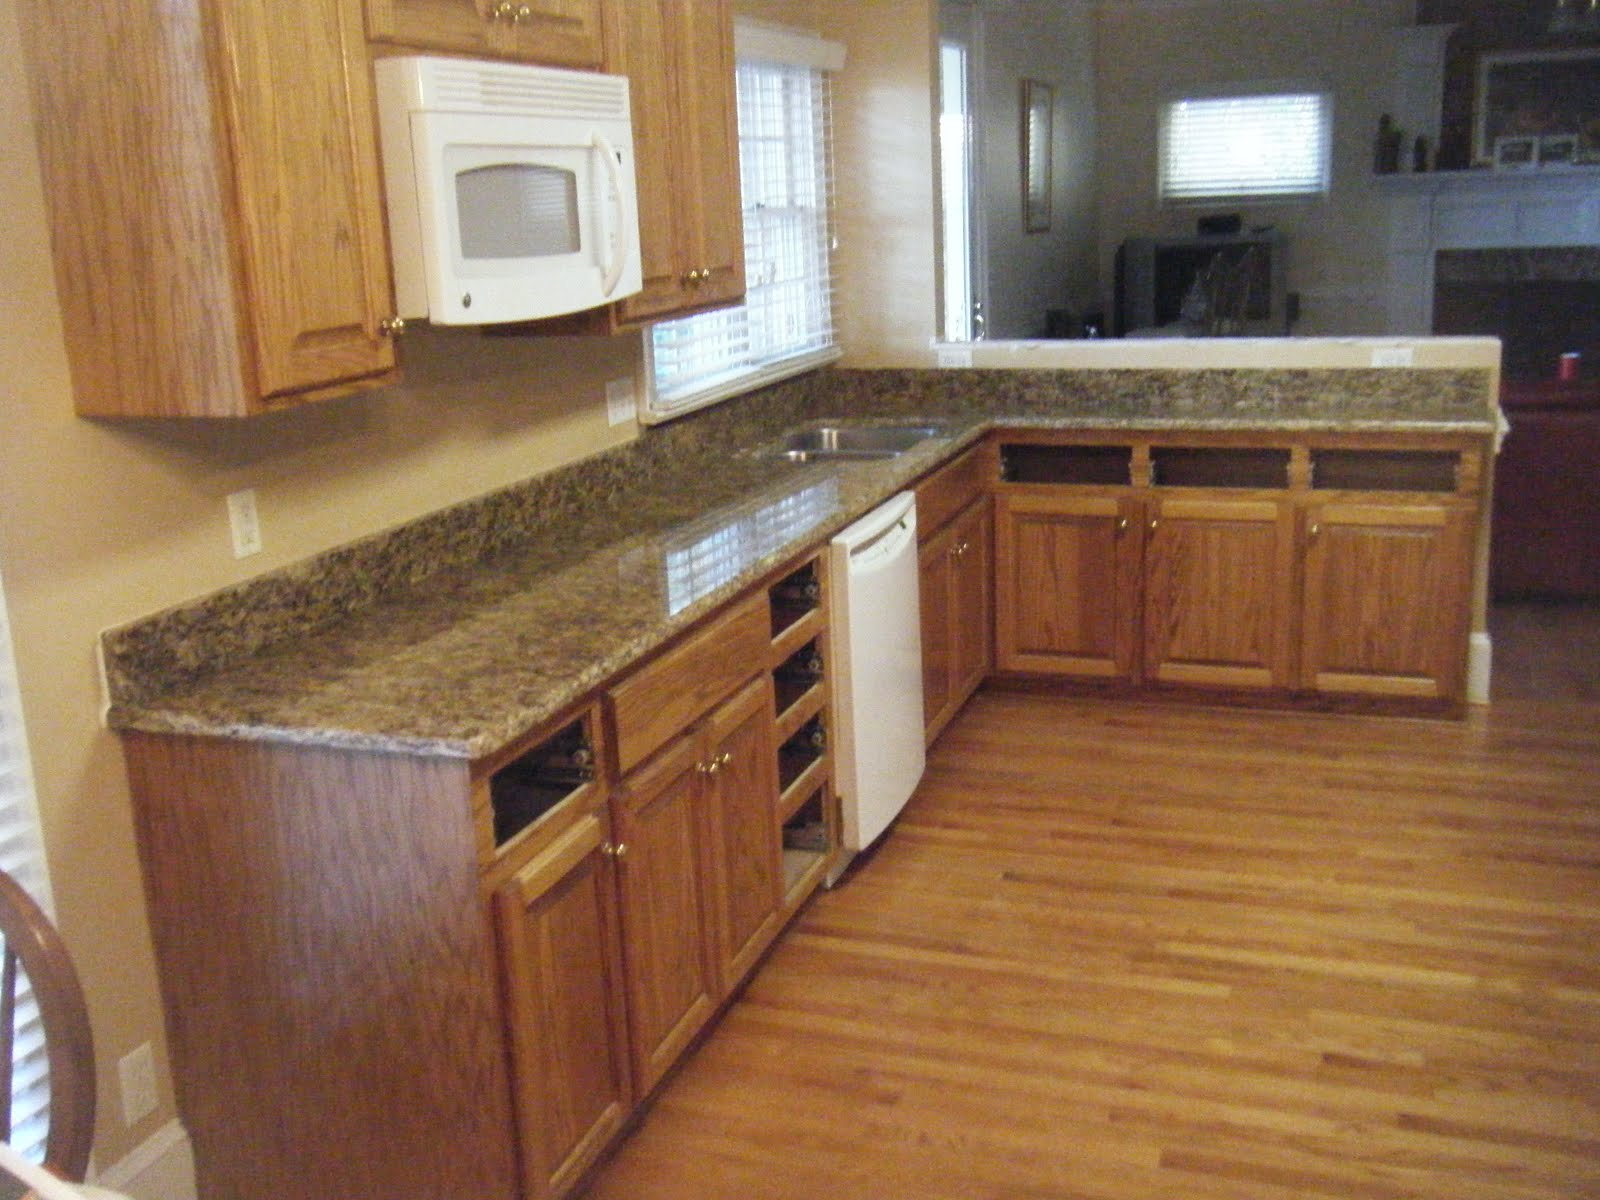 Granite countertops most popular favorite - Seafoam Green Granite Countertop For Kitchen Natural Wooden Kitchen Furniture Natural Wooden Floor